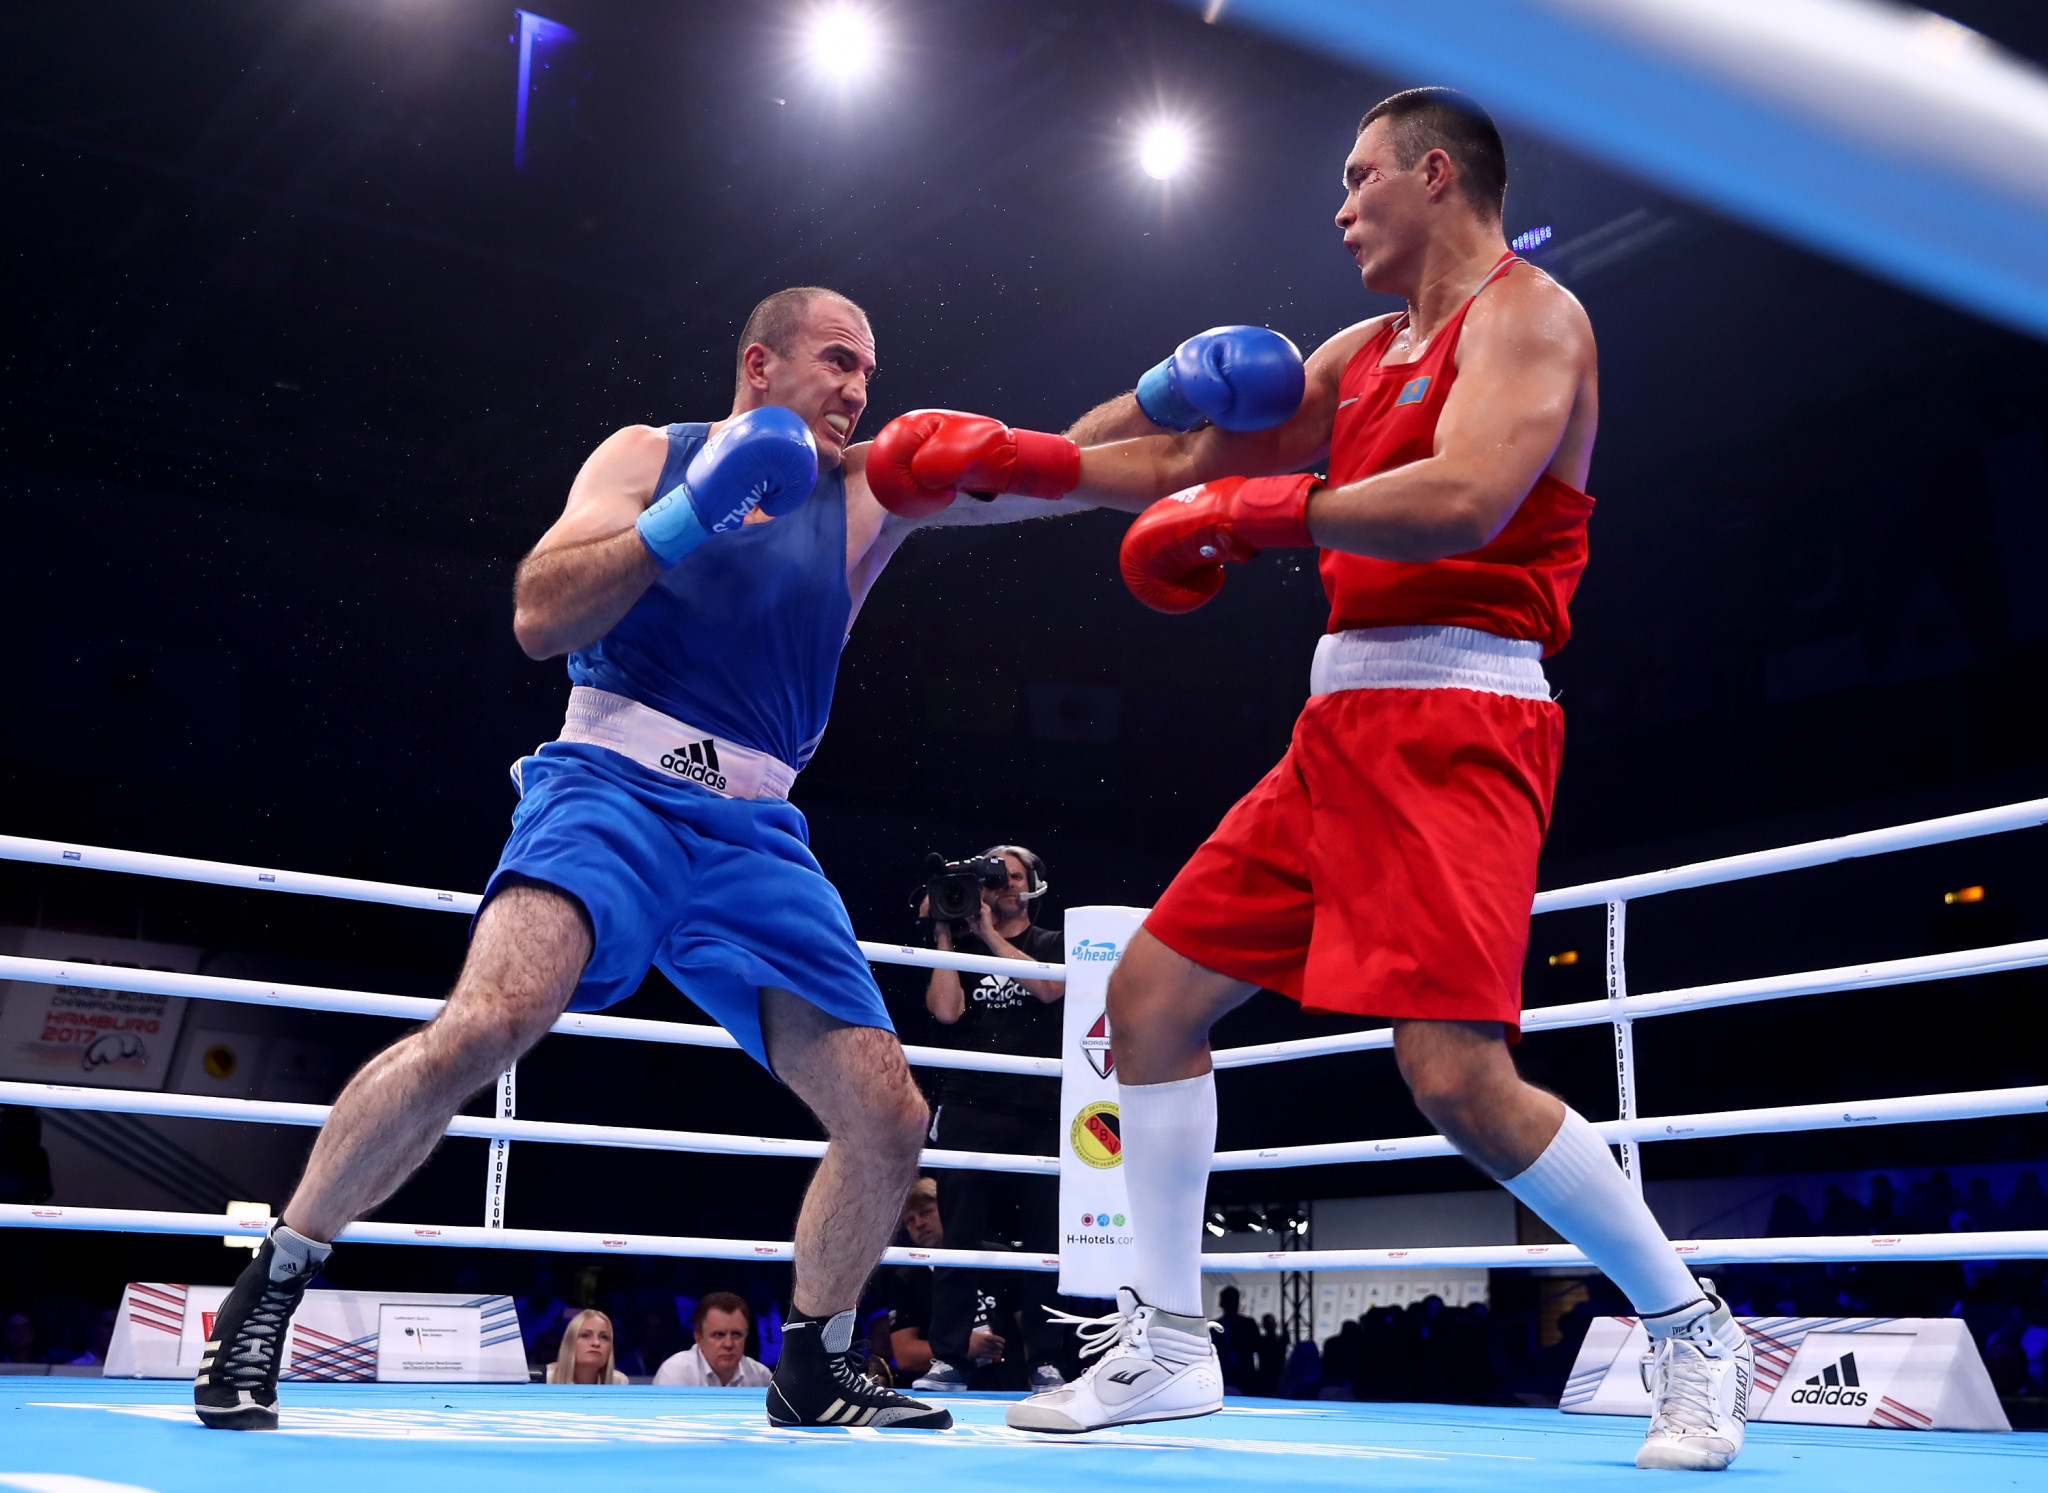 AIBA have insisted the World Championships in Sochi will be a clean event ©Getty Images